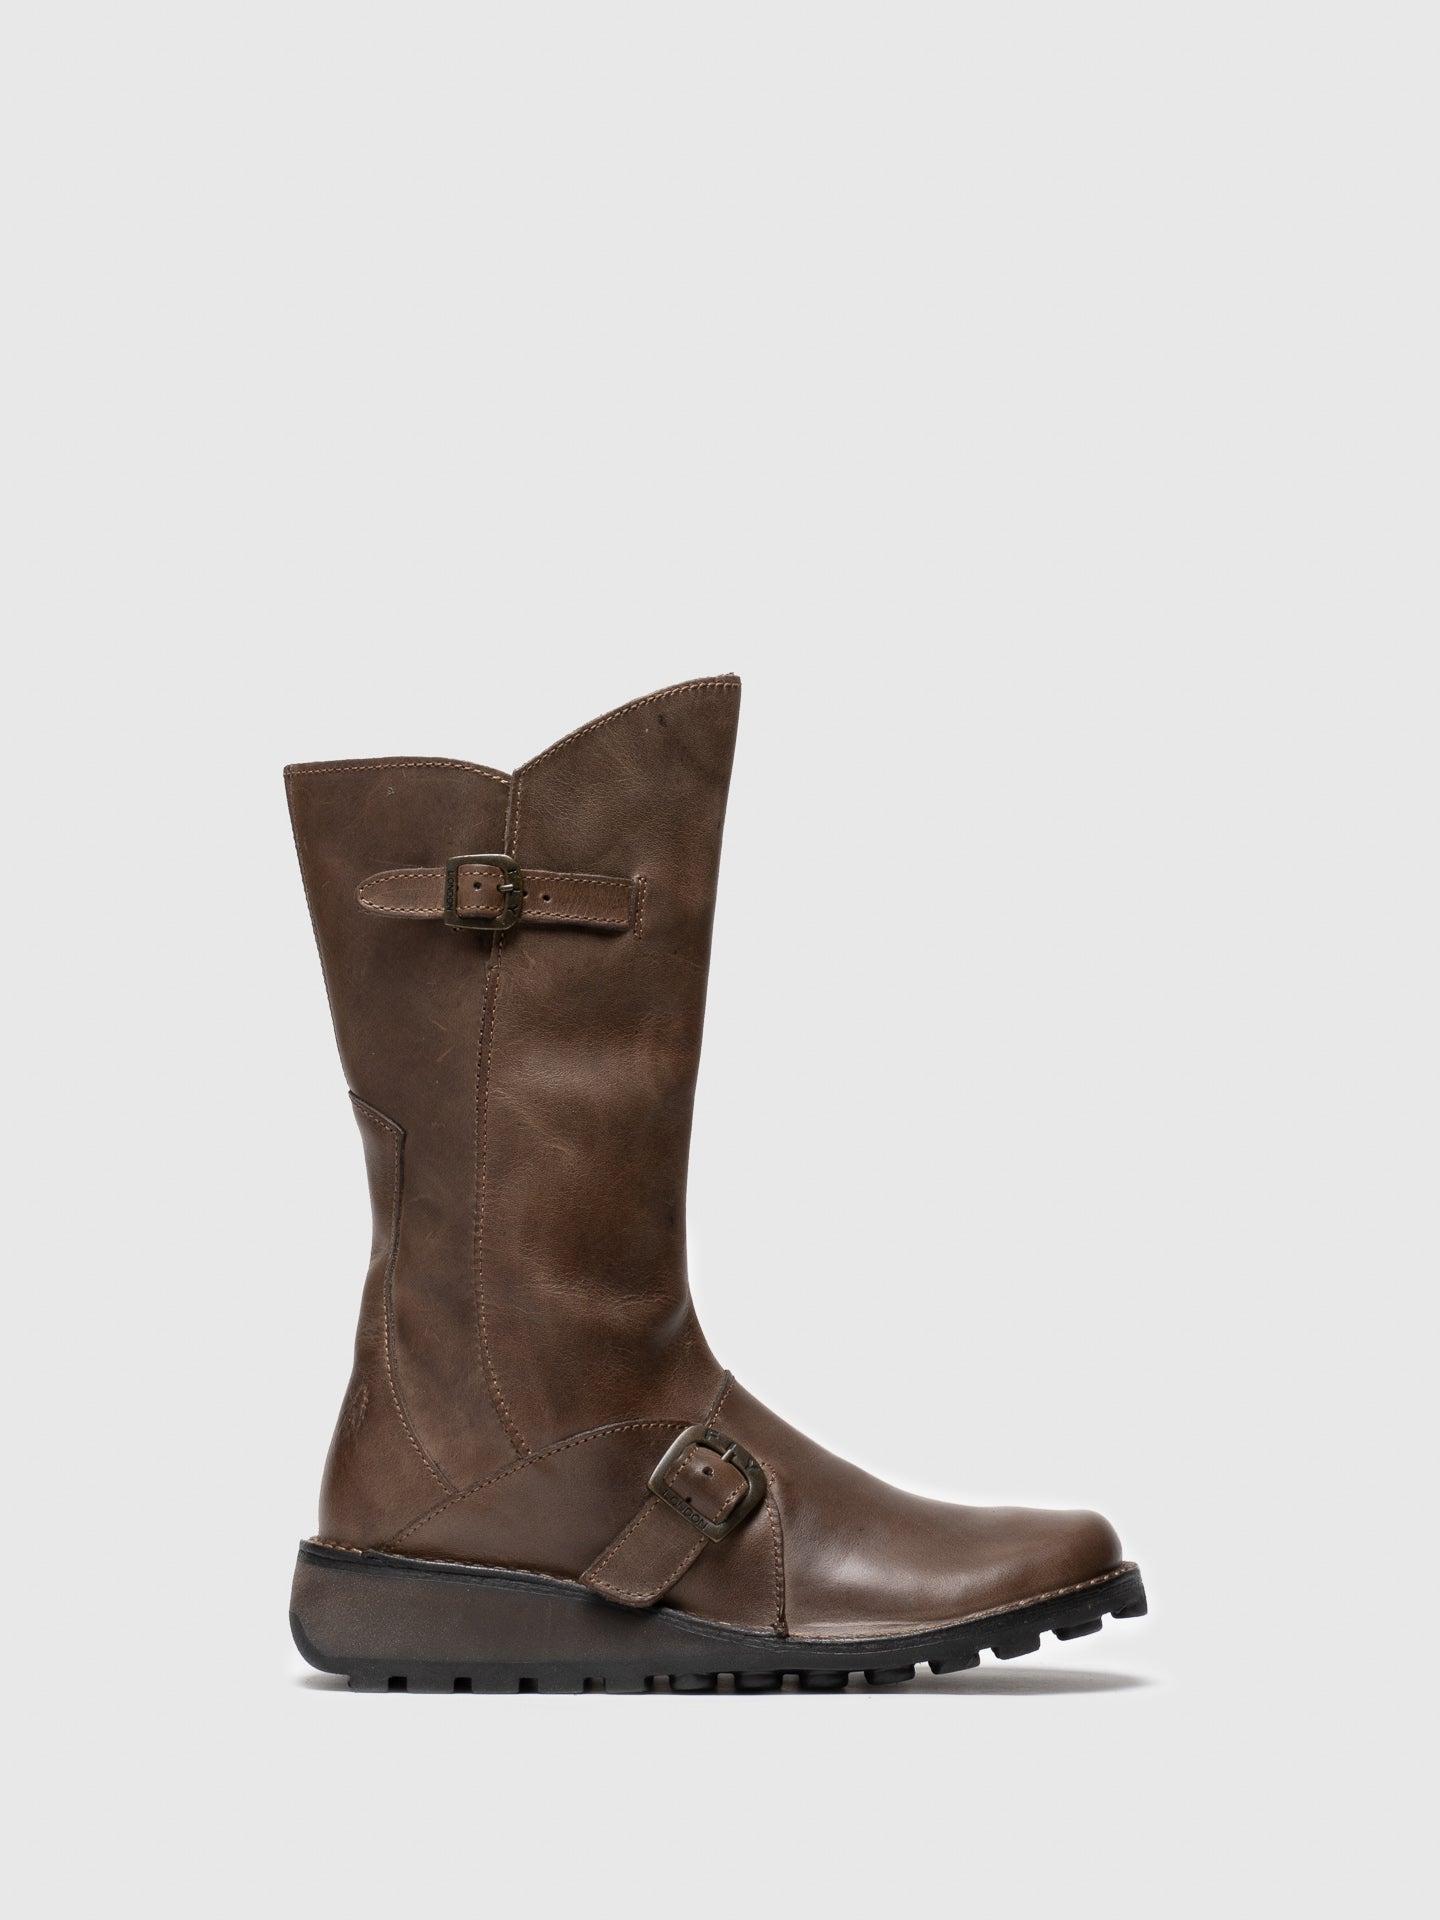 Fly London Brown Leather Buckle Boots